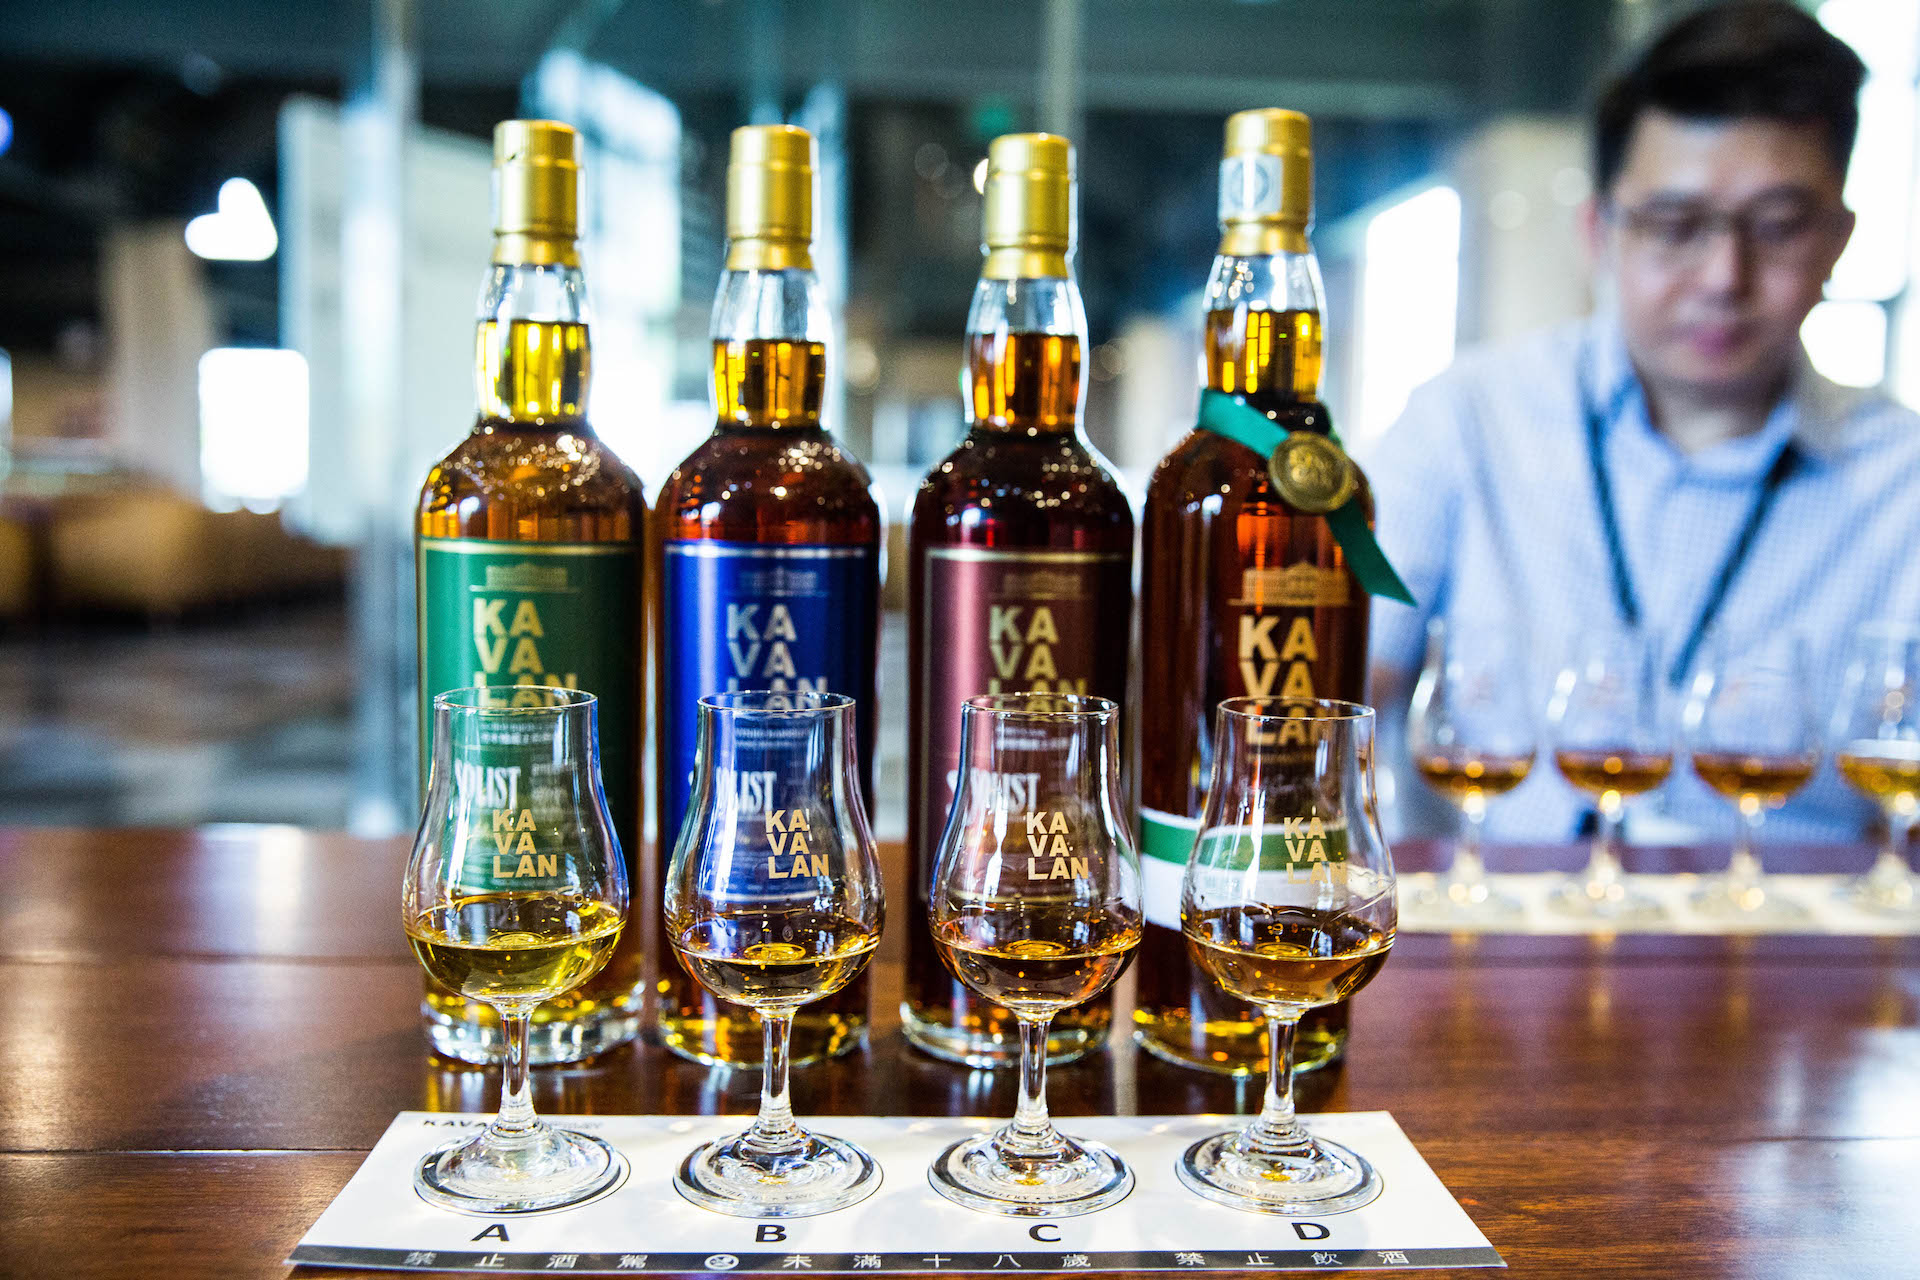 The four most famous flavors of Kavalan, including their Gold Prize Winner: The Amontillado.